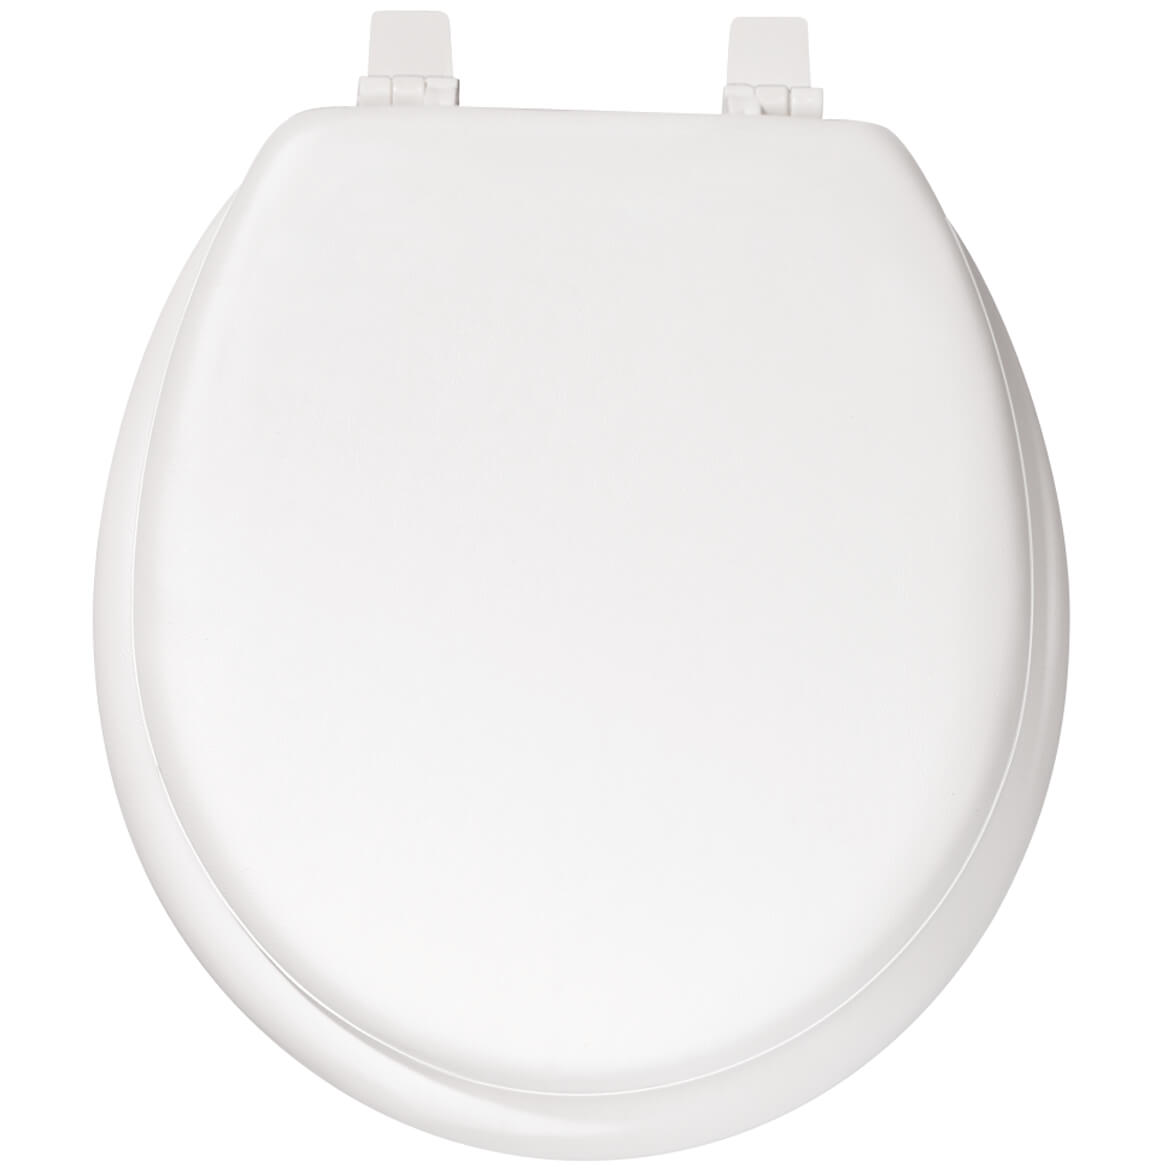 Groovy Padded Toilet Seat And Lid Theyellowbook Wood Chair Design Ideas Theyellowbookinfo